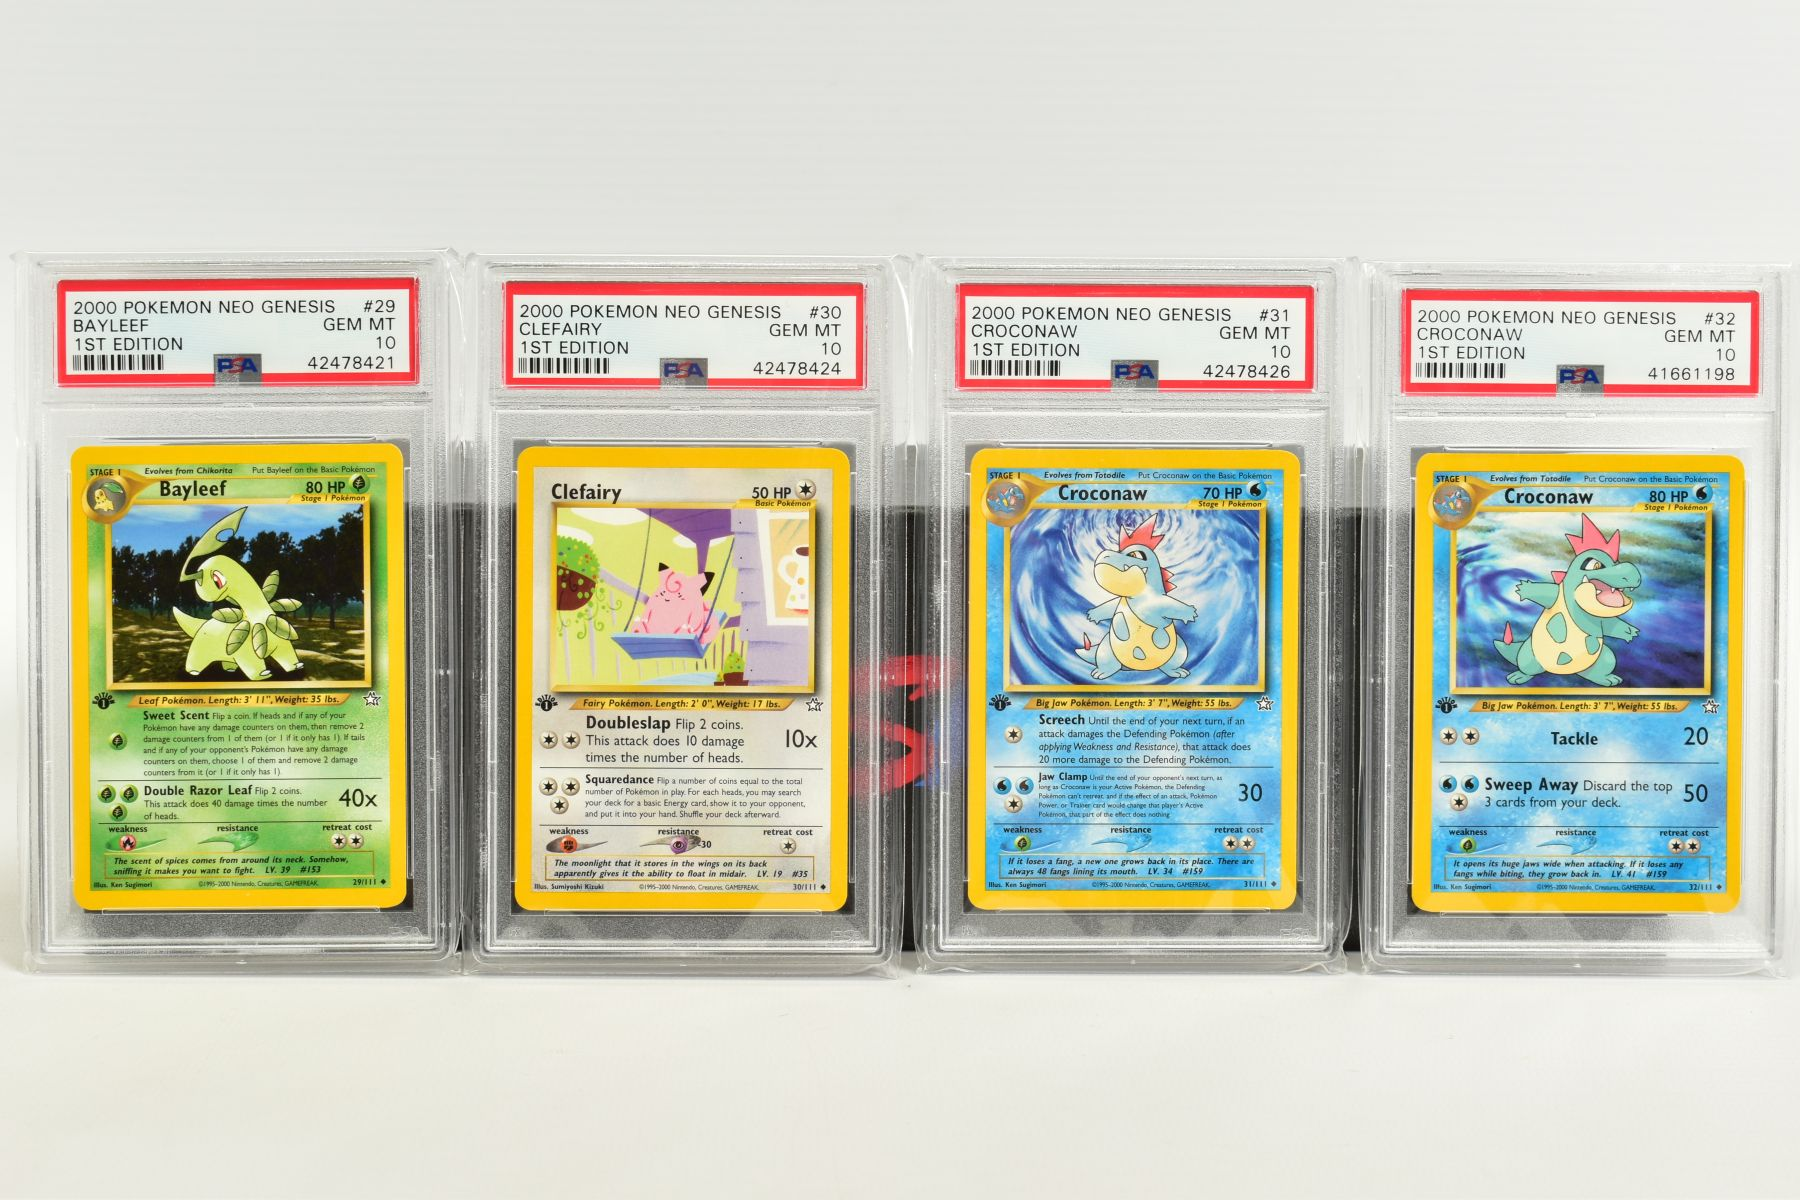 A QUANTITY OF PSA GRADED POKEMON 1ST EDITION NEO GENESIS SET CARDS, all are graded GEM MINT 10 and - Image 4 of 24